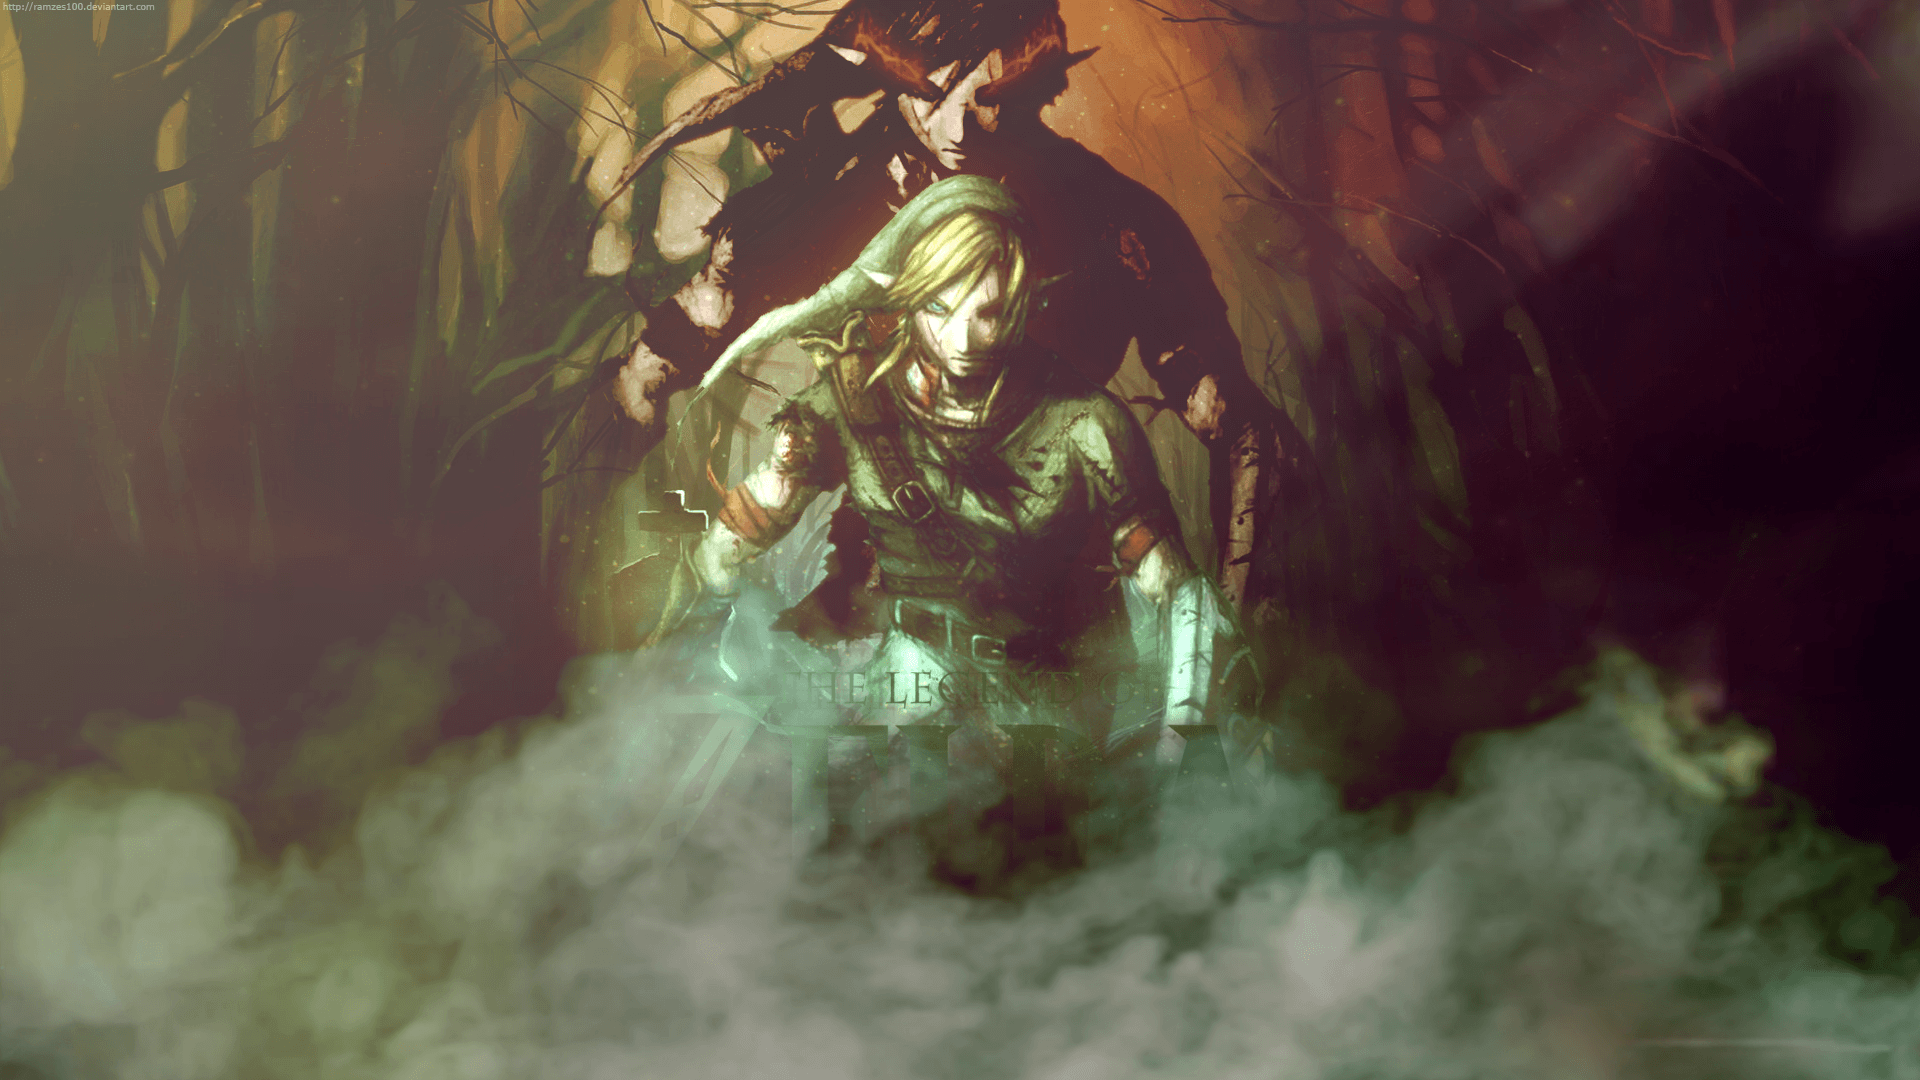 hd zelda wallpapers - photo #31